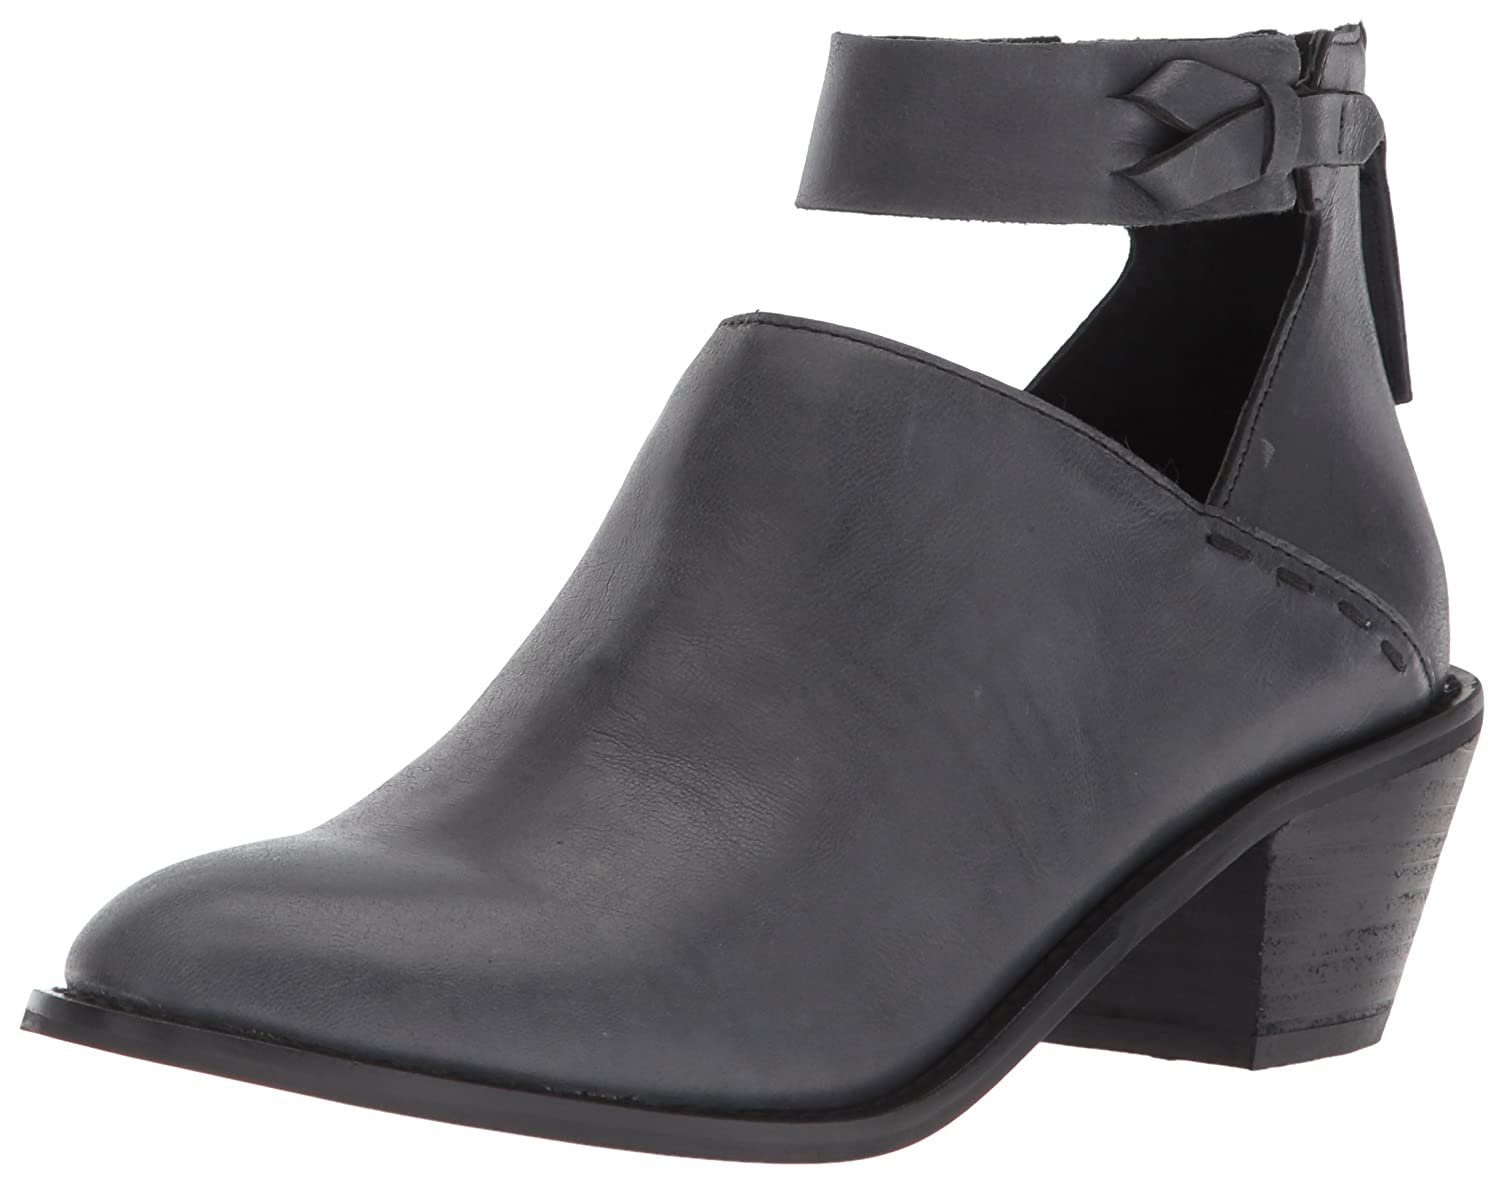 Kelsi Dagger Brooklyn Women's Kadeeja Ankle Boot B0756CYSZX 9 B(M) US|Black